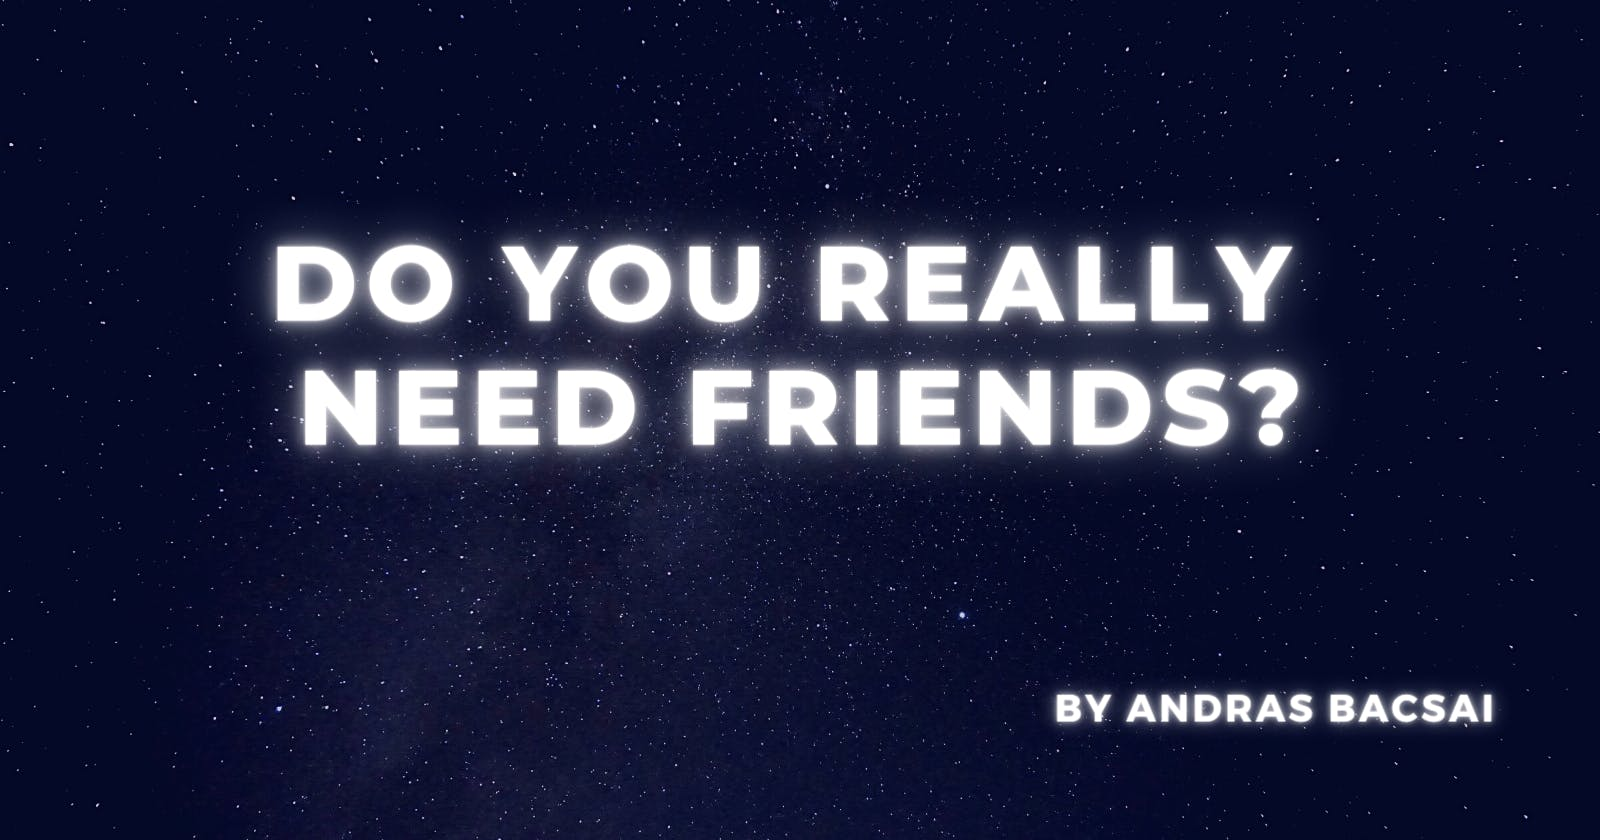 Do you really need friends?